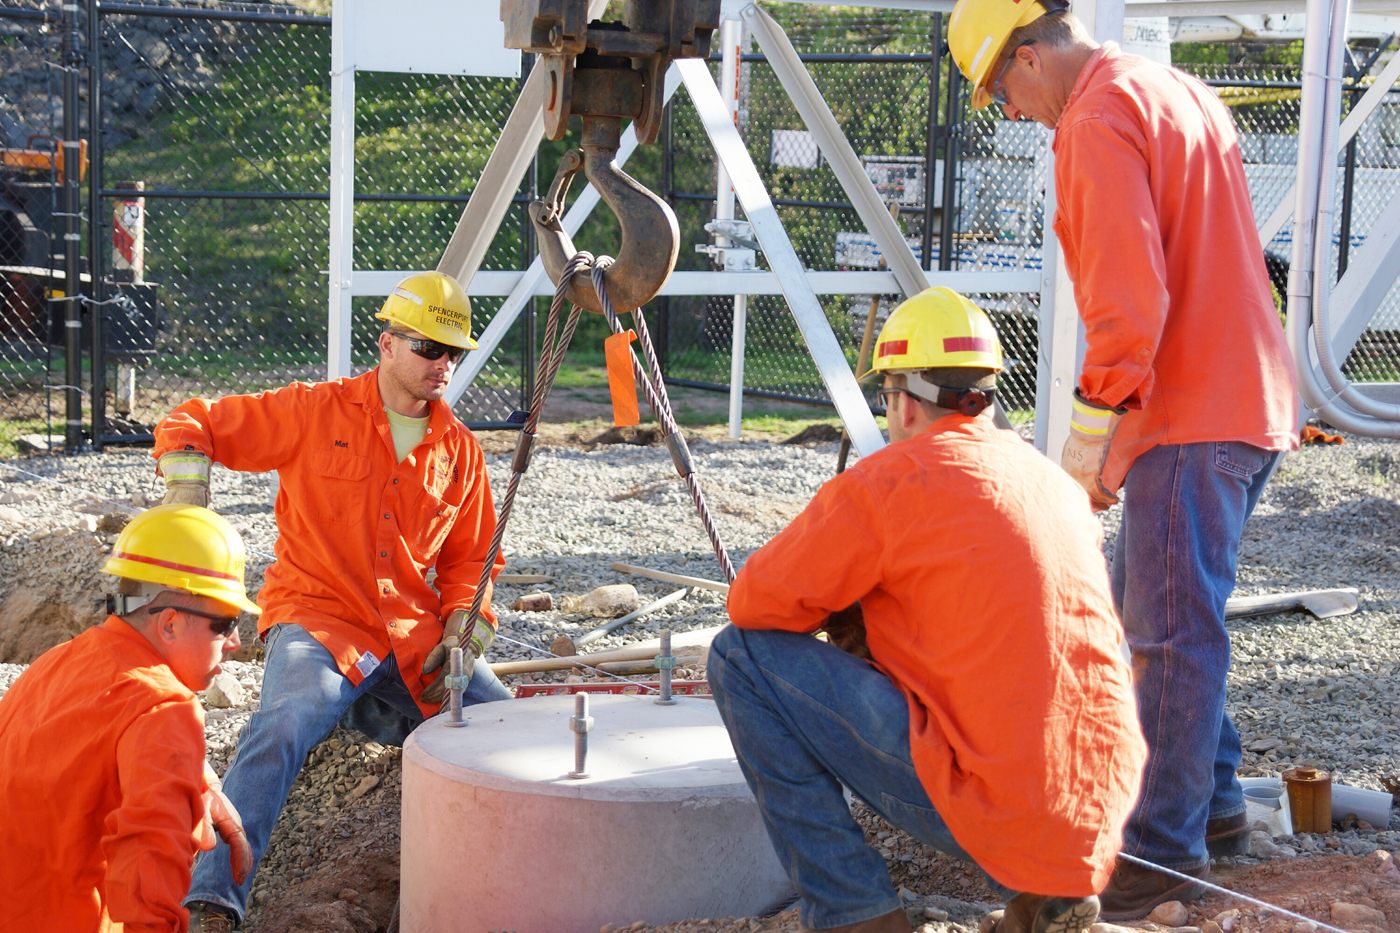 SME employees working on the substation. Provided photo